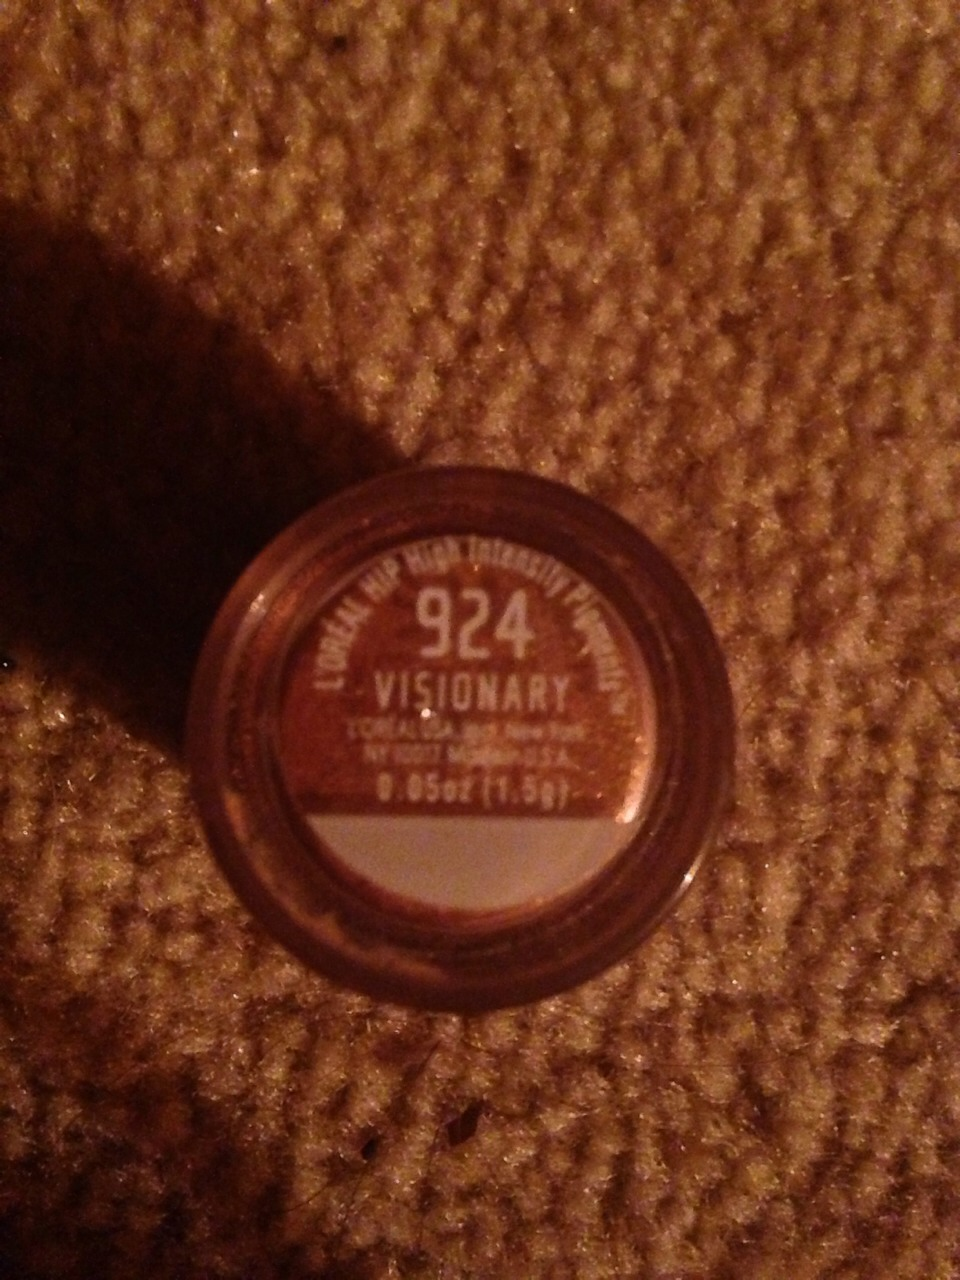 My choice of glitter is  L'oréal Hip High Intensity Pigments shade Visionary #924